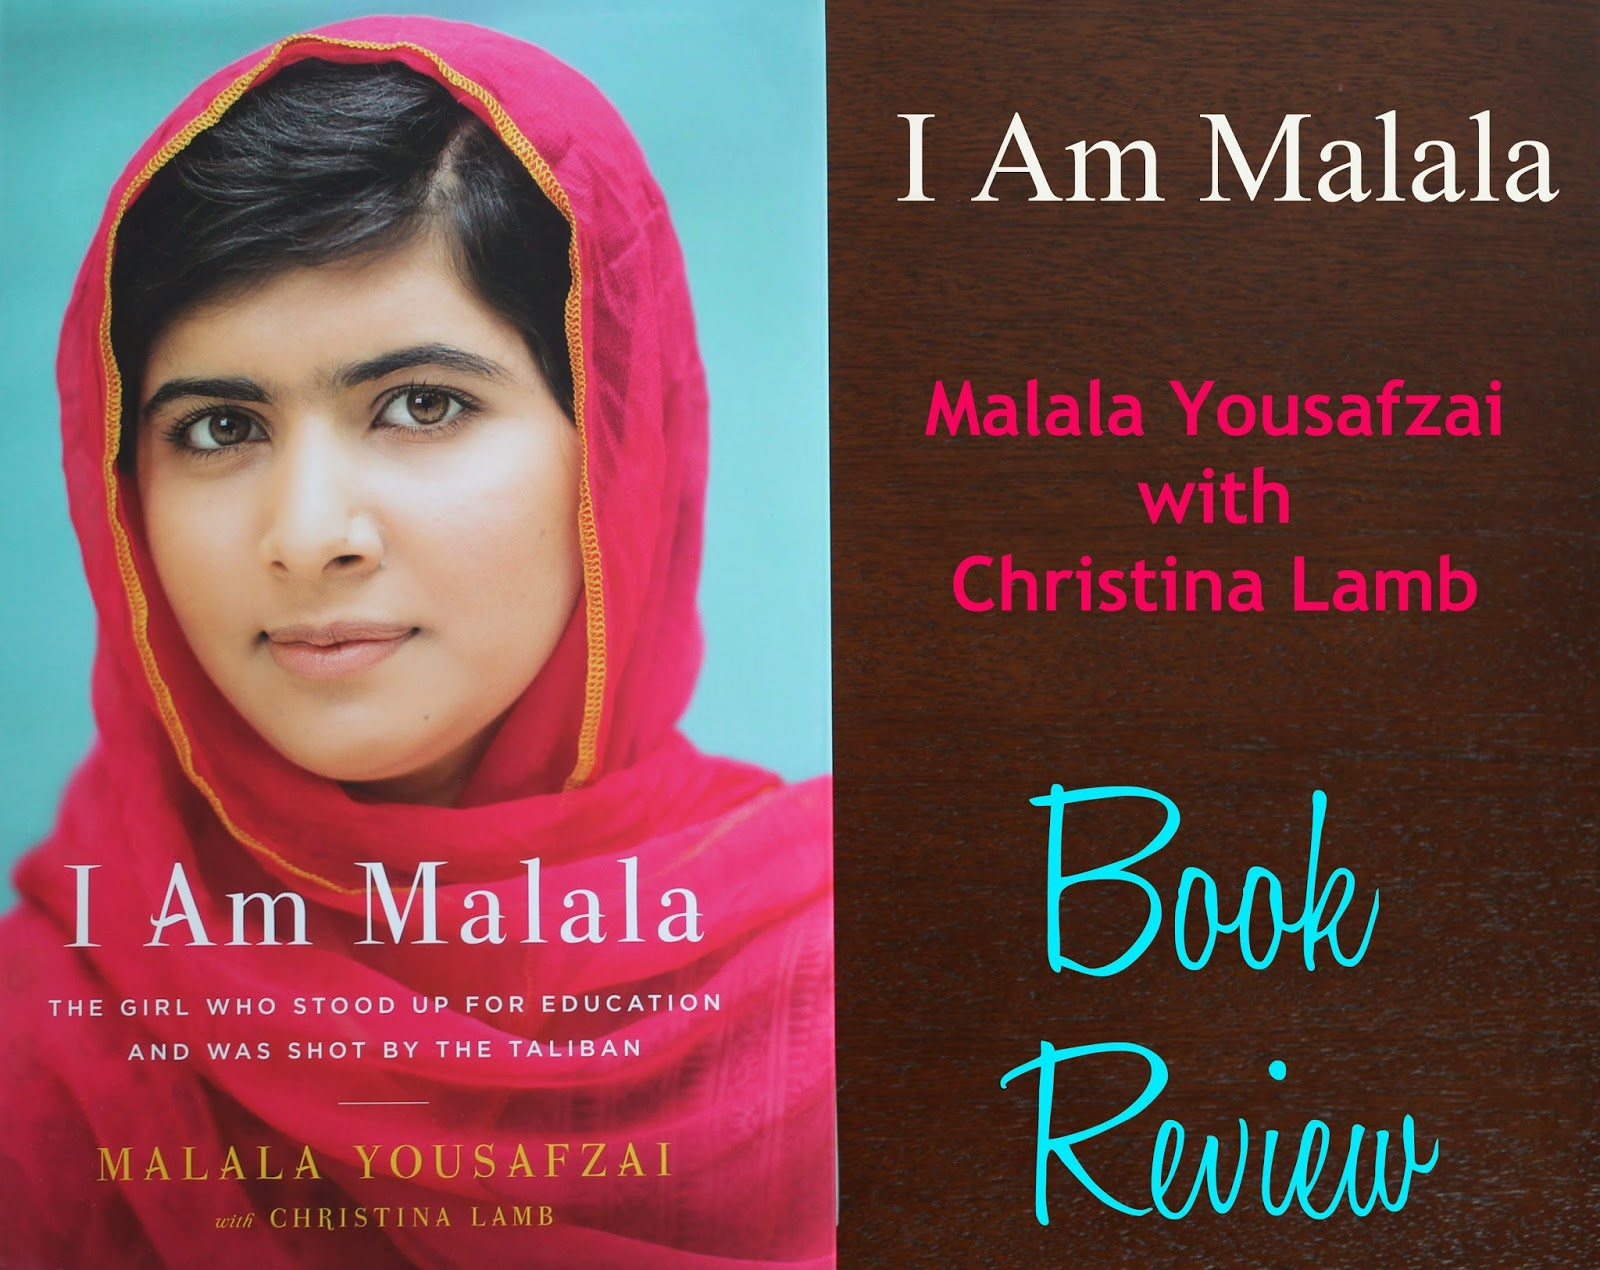 Book review: 'I Am Malala' by Malala Yousafzai - The ...